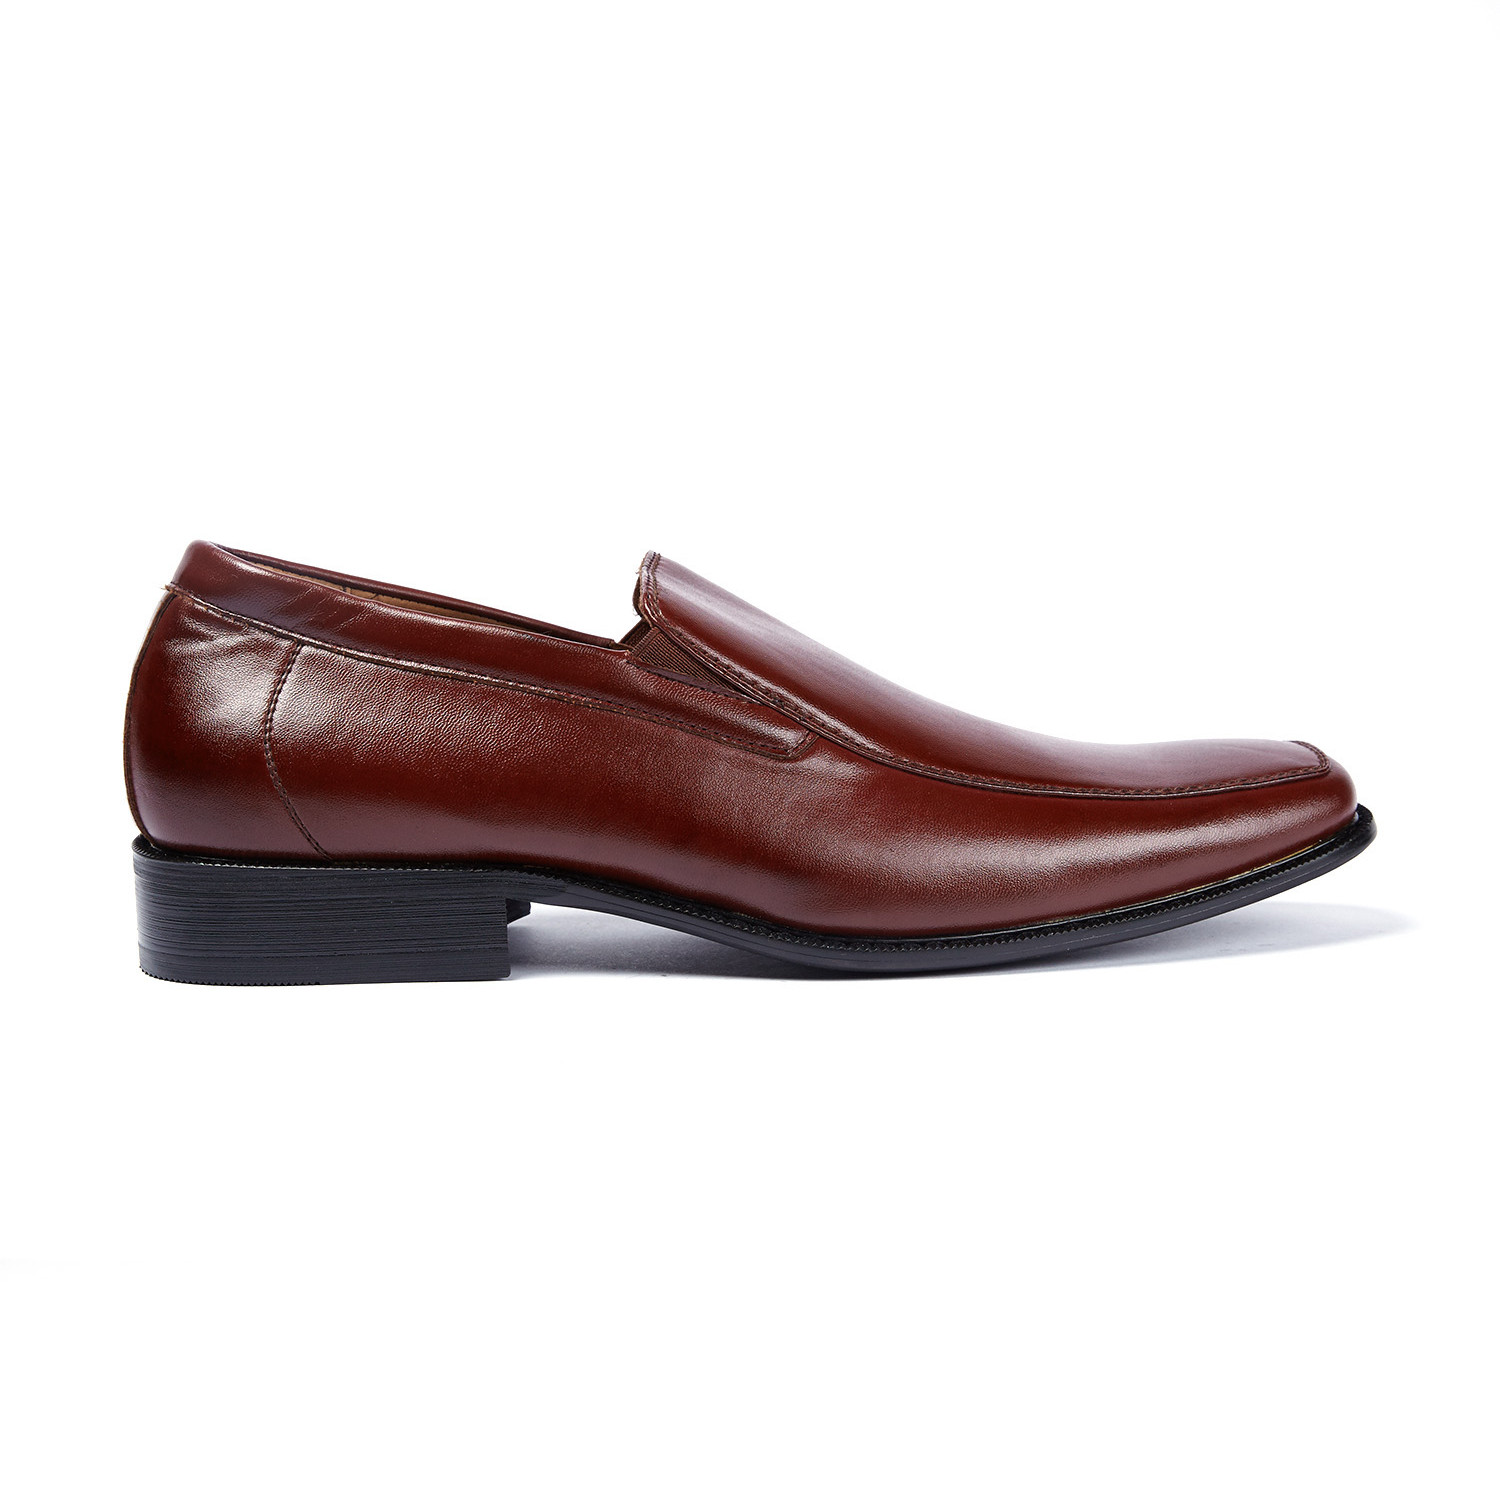 This classic loafer is all about comfort and functionality with its sure-footed tread and slip-on design.